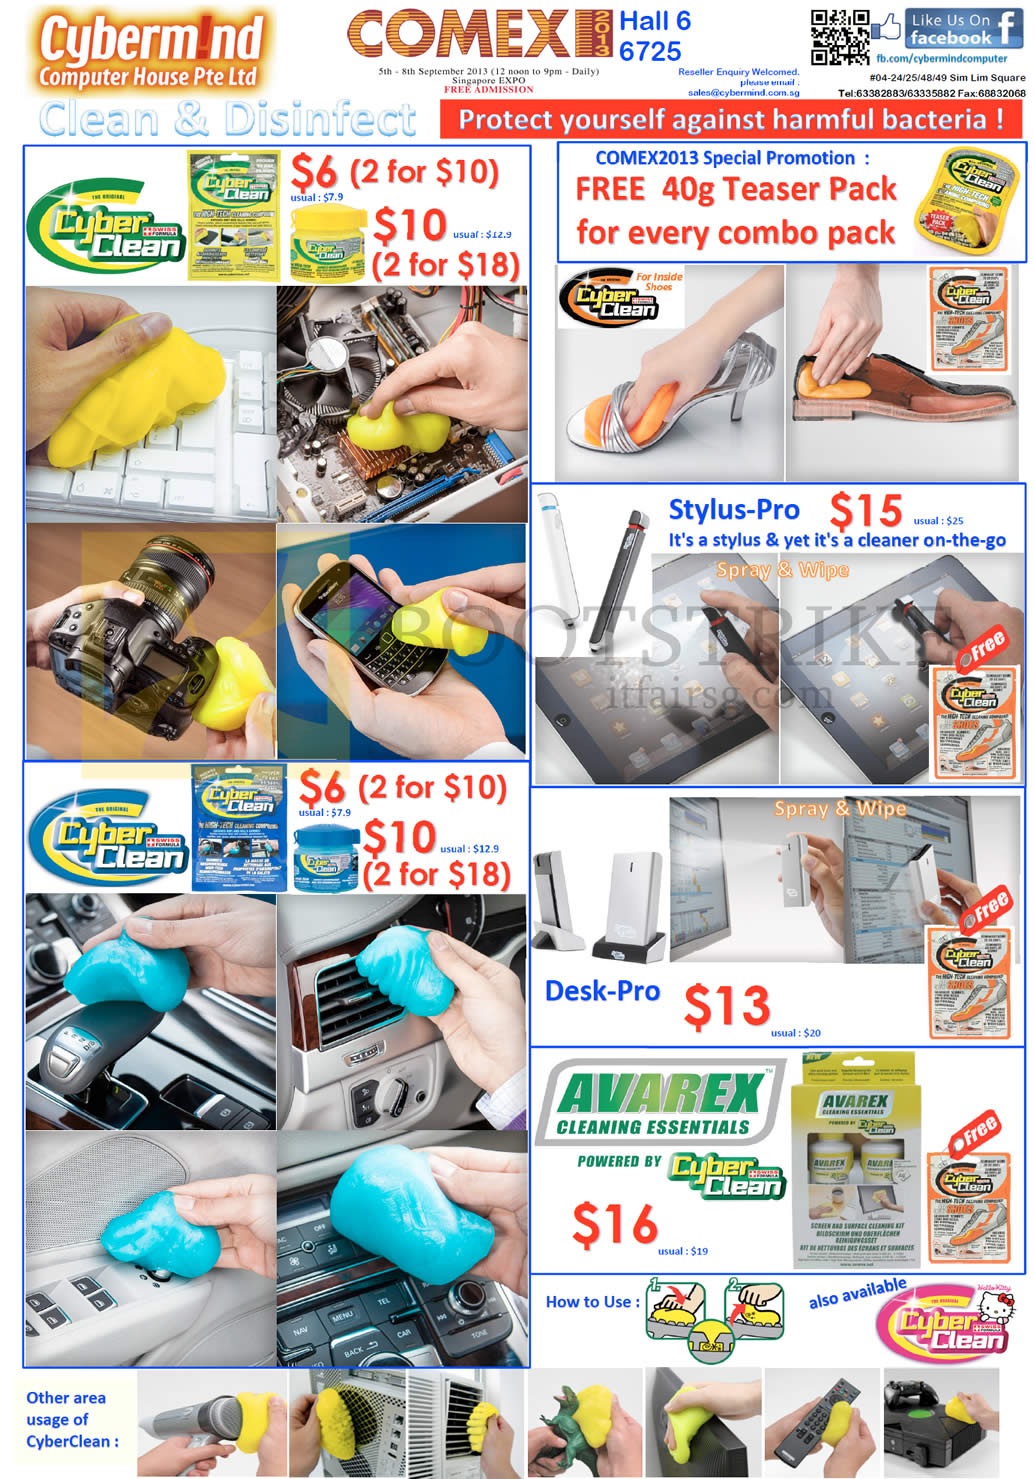 COMEX 2013 price list image brochure of Cybermind CyberClean Clean N Disinfect, Stylus-Pro, Desk-Pro, Avarex